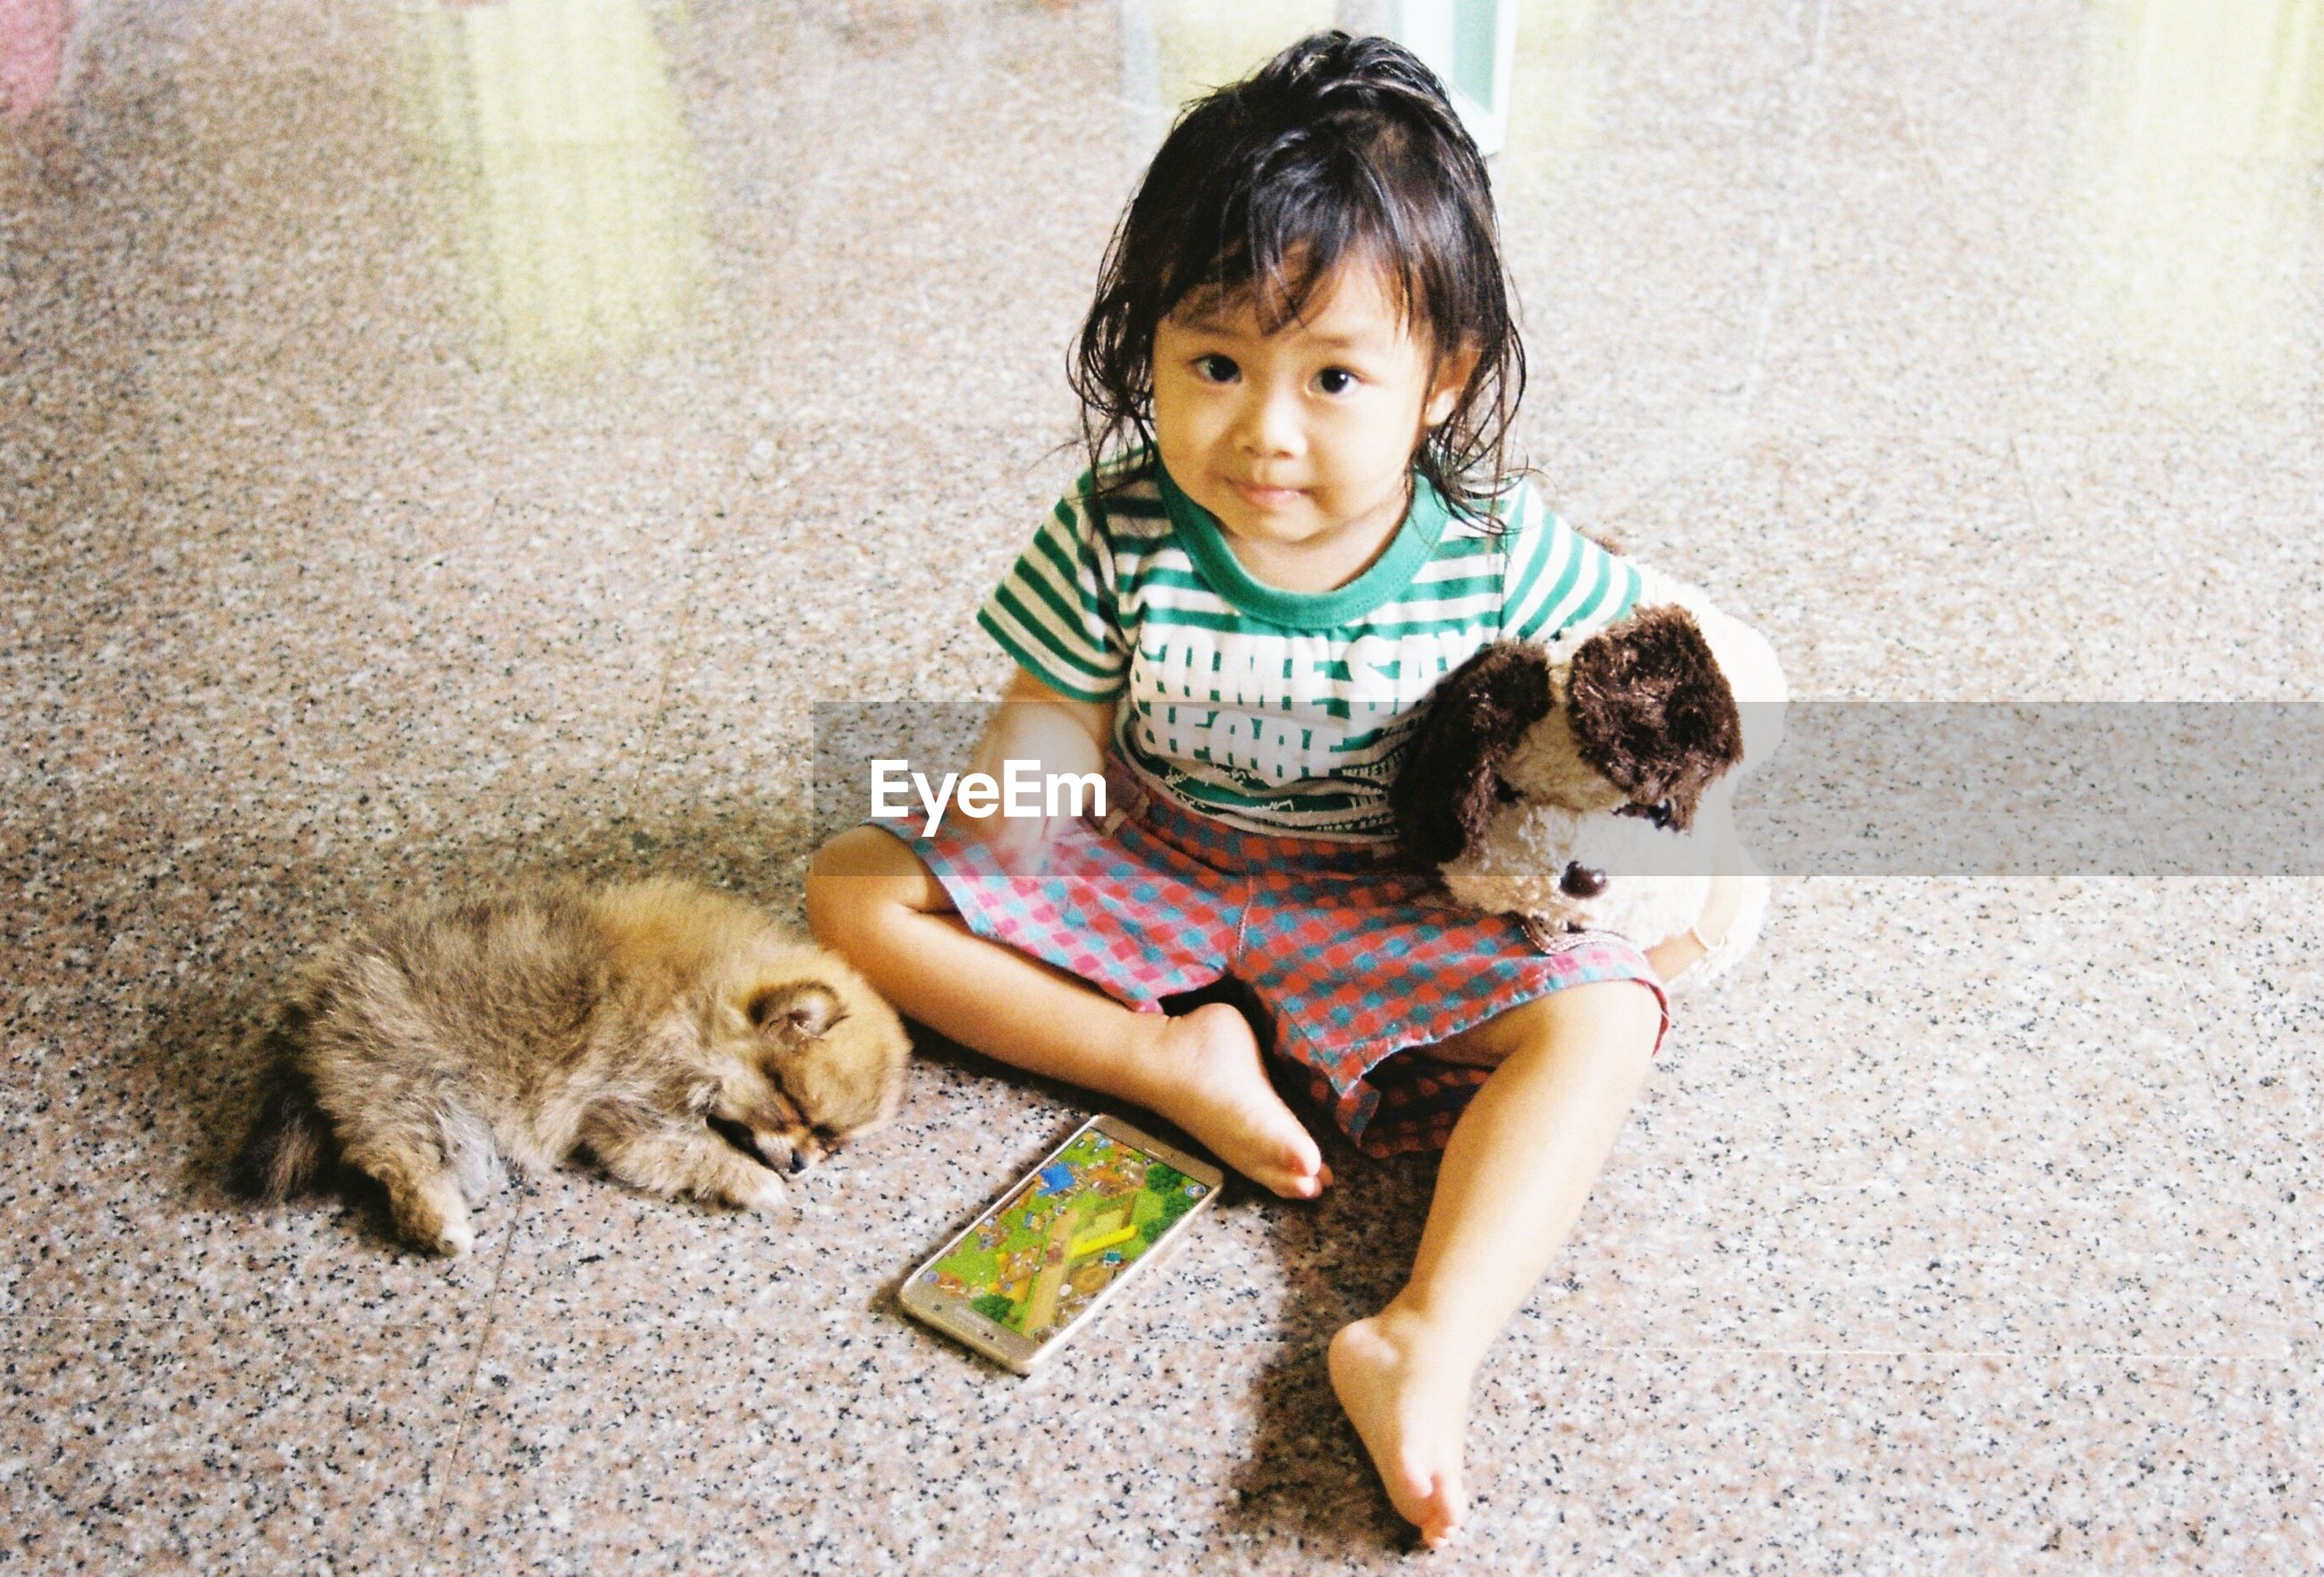 one animal, animal, dog, pets, animal themes, domestic animals, childhood, one person, mammal, people, learning, puppy, full length, outdoors, children only, day, sitting, friendship, child, adult